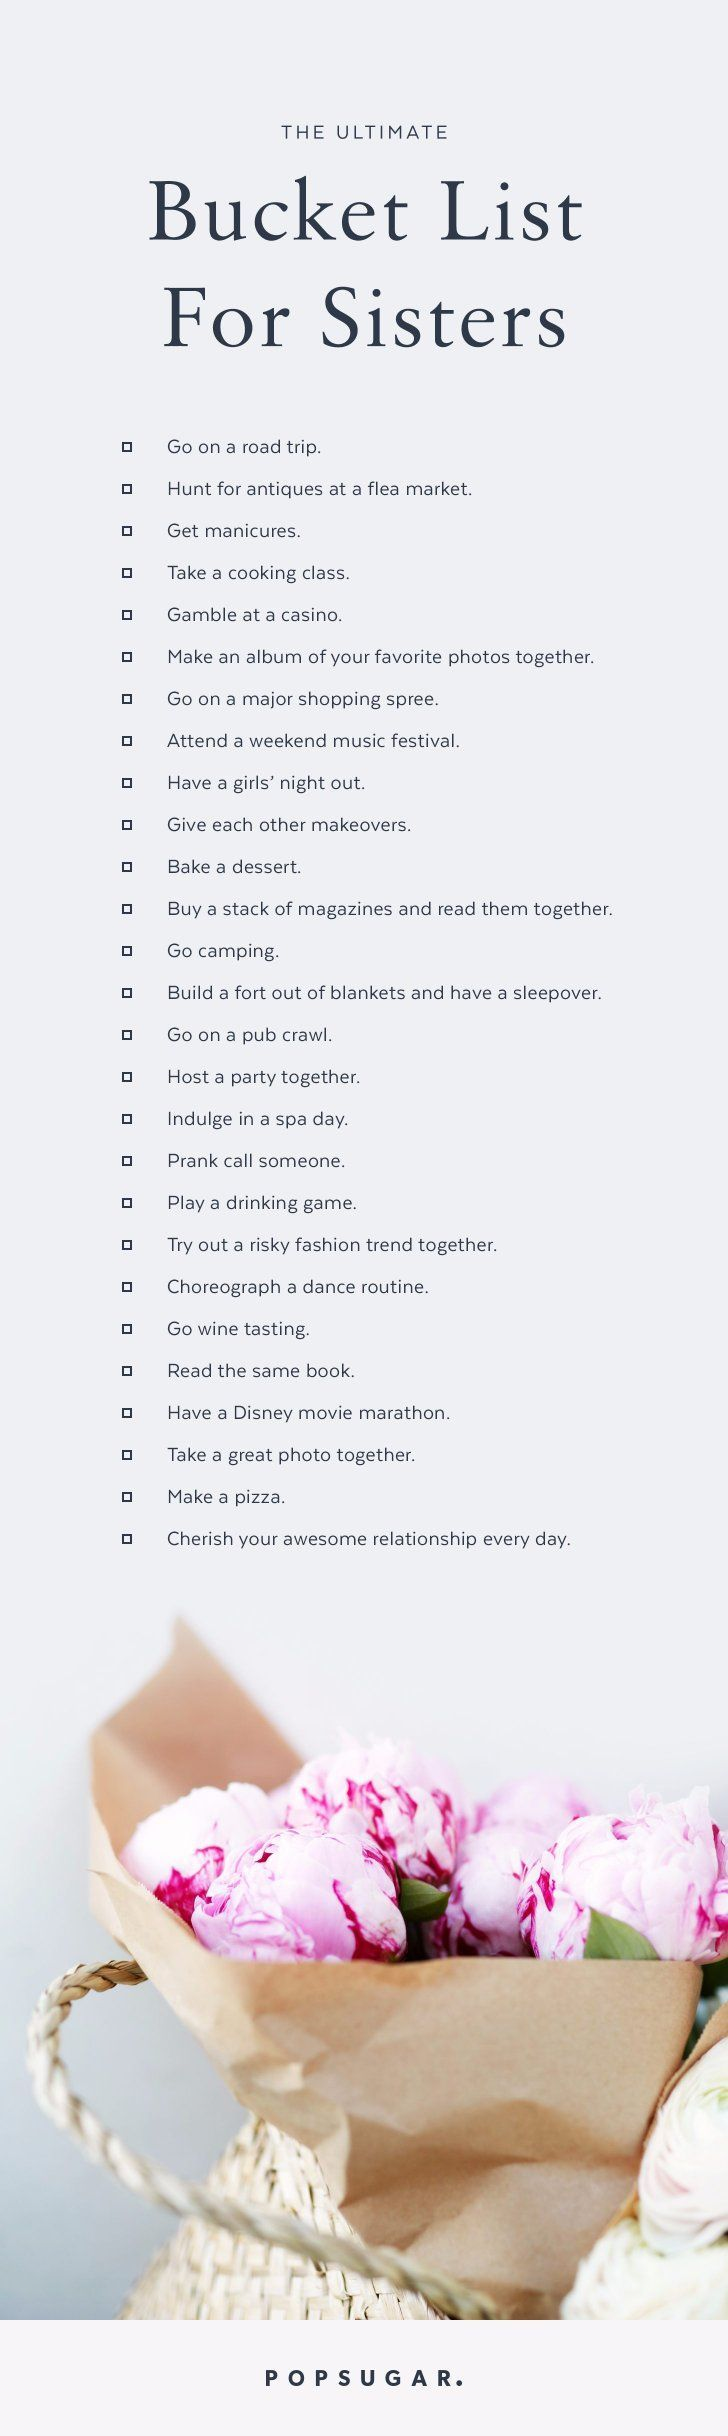 best sister birthday quotes ideas pinterest the ultimate bucket list for sisters